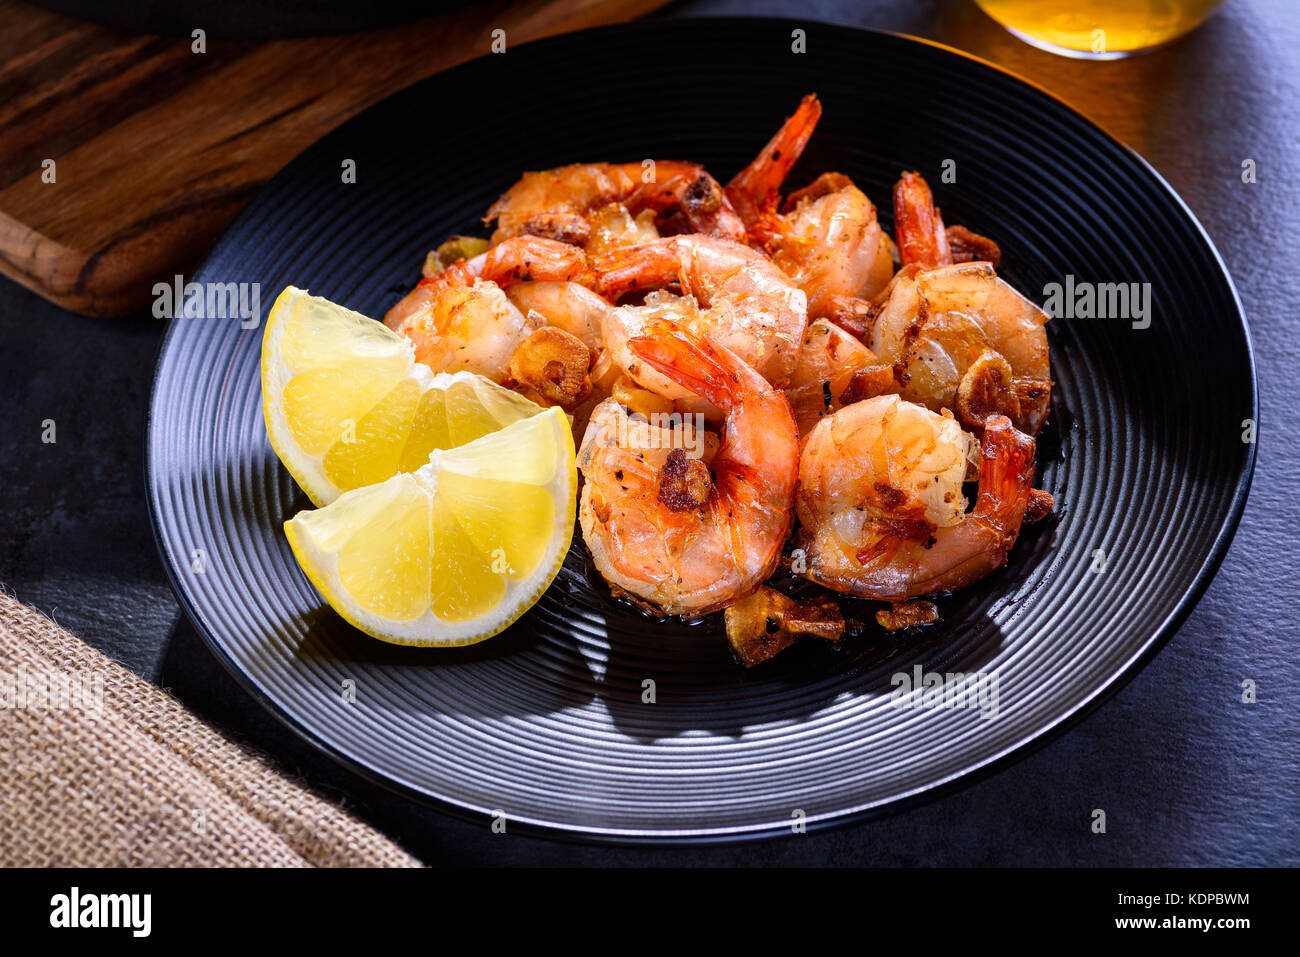 Skillet roasted jumbo shrimp on a black plate. Closeup. Shrimp roasted with sliced garlic and spices. - Stock Image